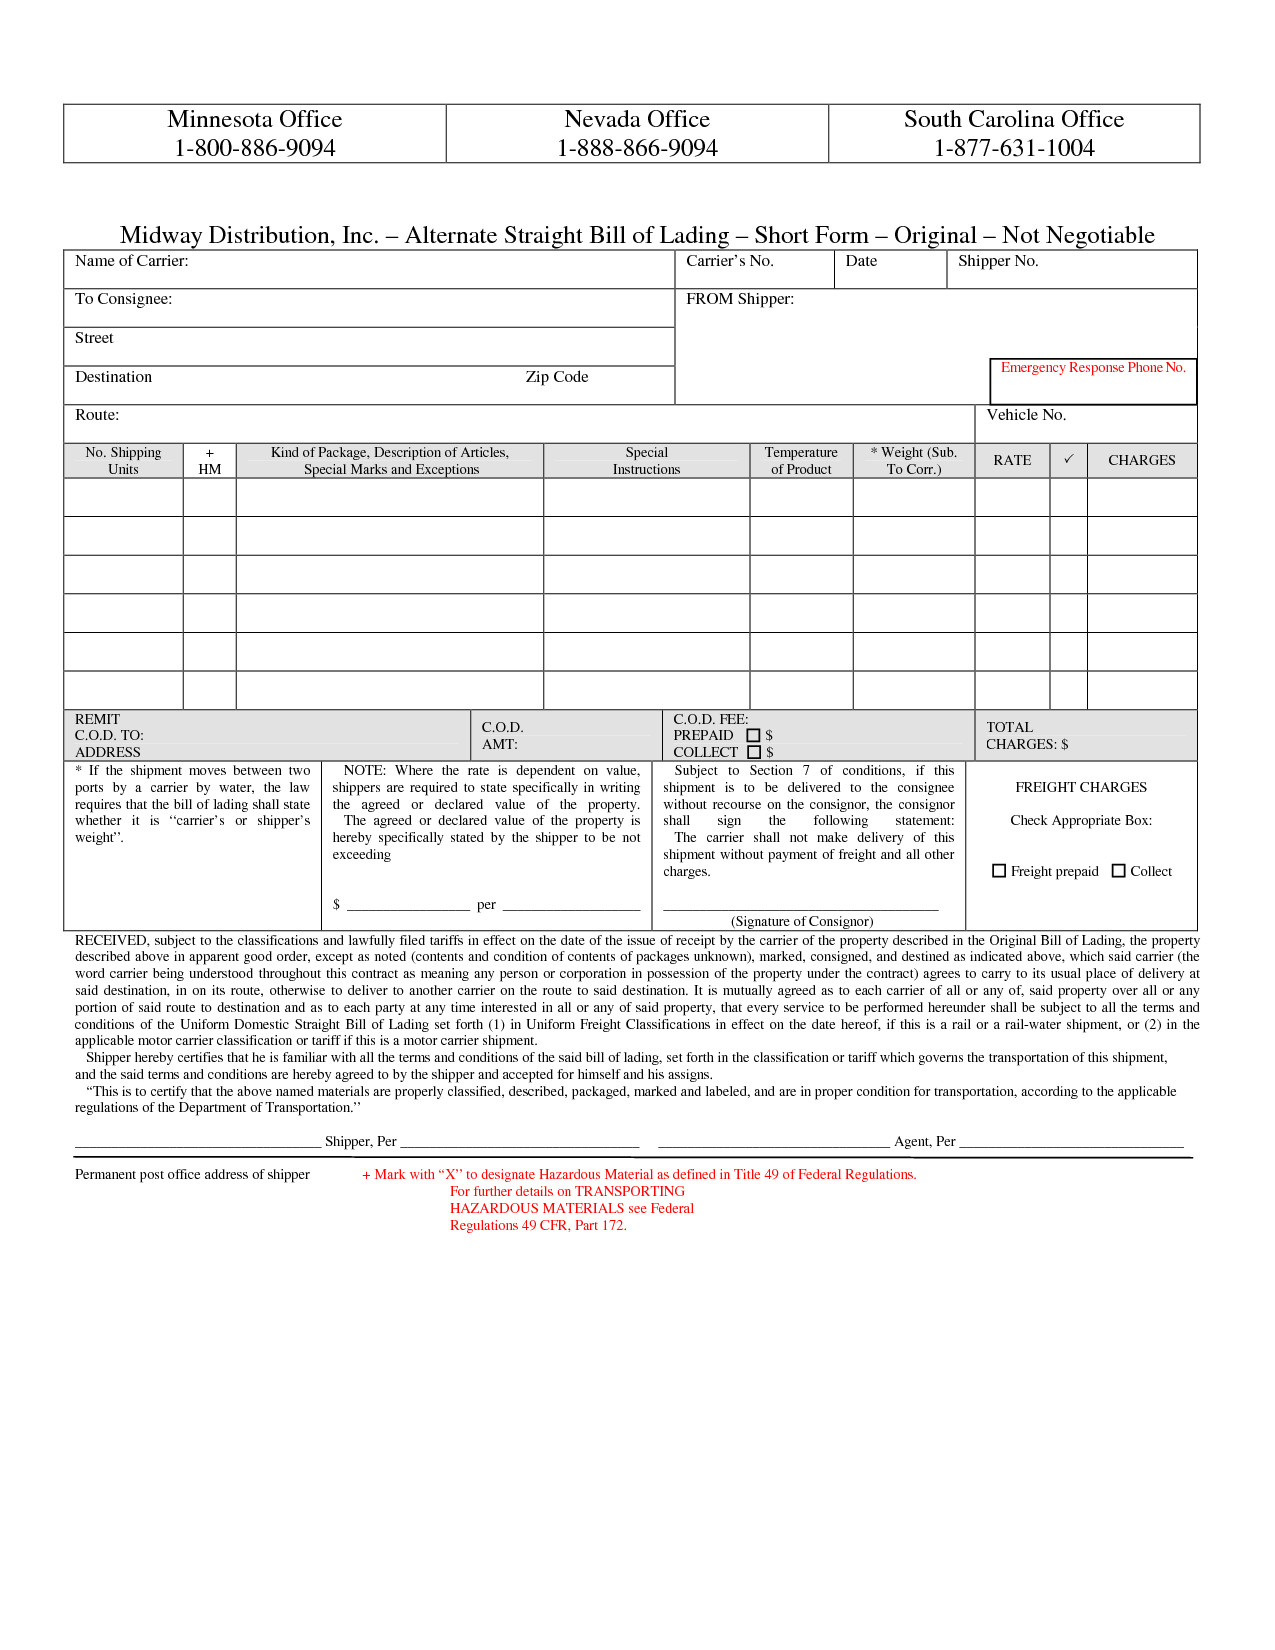 Straight Bill Of Lading Short form Template Free 10 Best Images Of Bill Of Lading Short form Bill Of